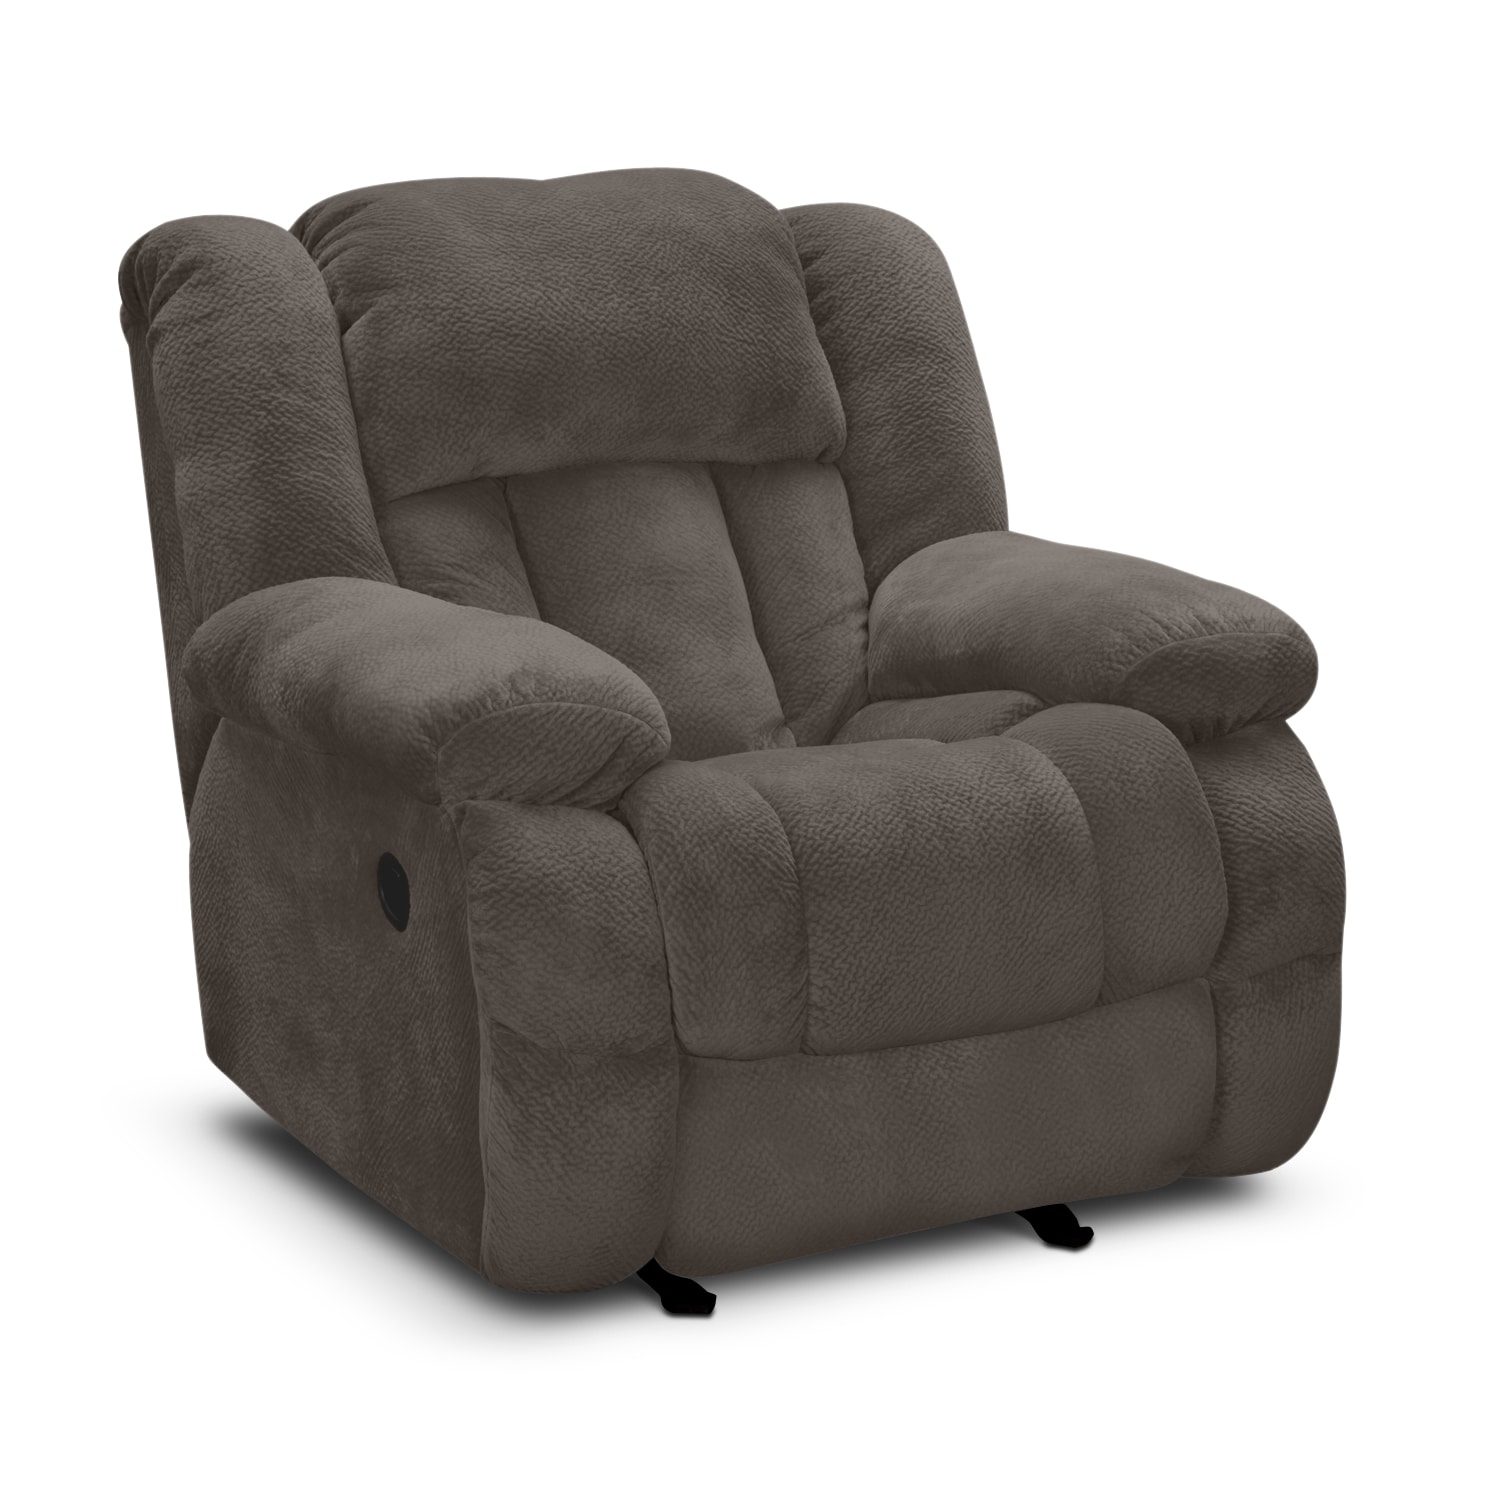 Living Room Furniture - Park City Glider Recliner - Gray